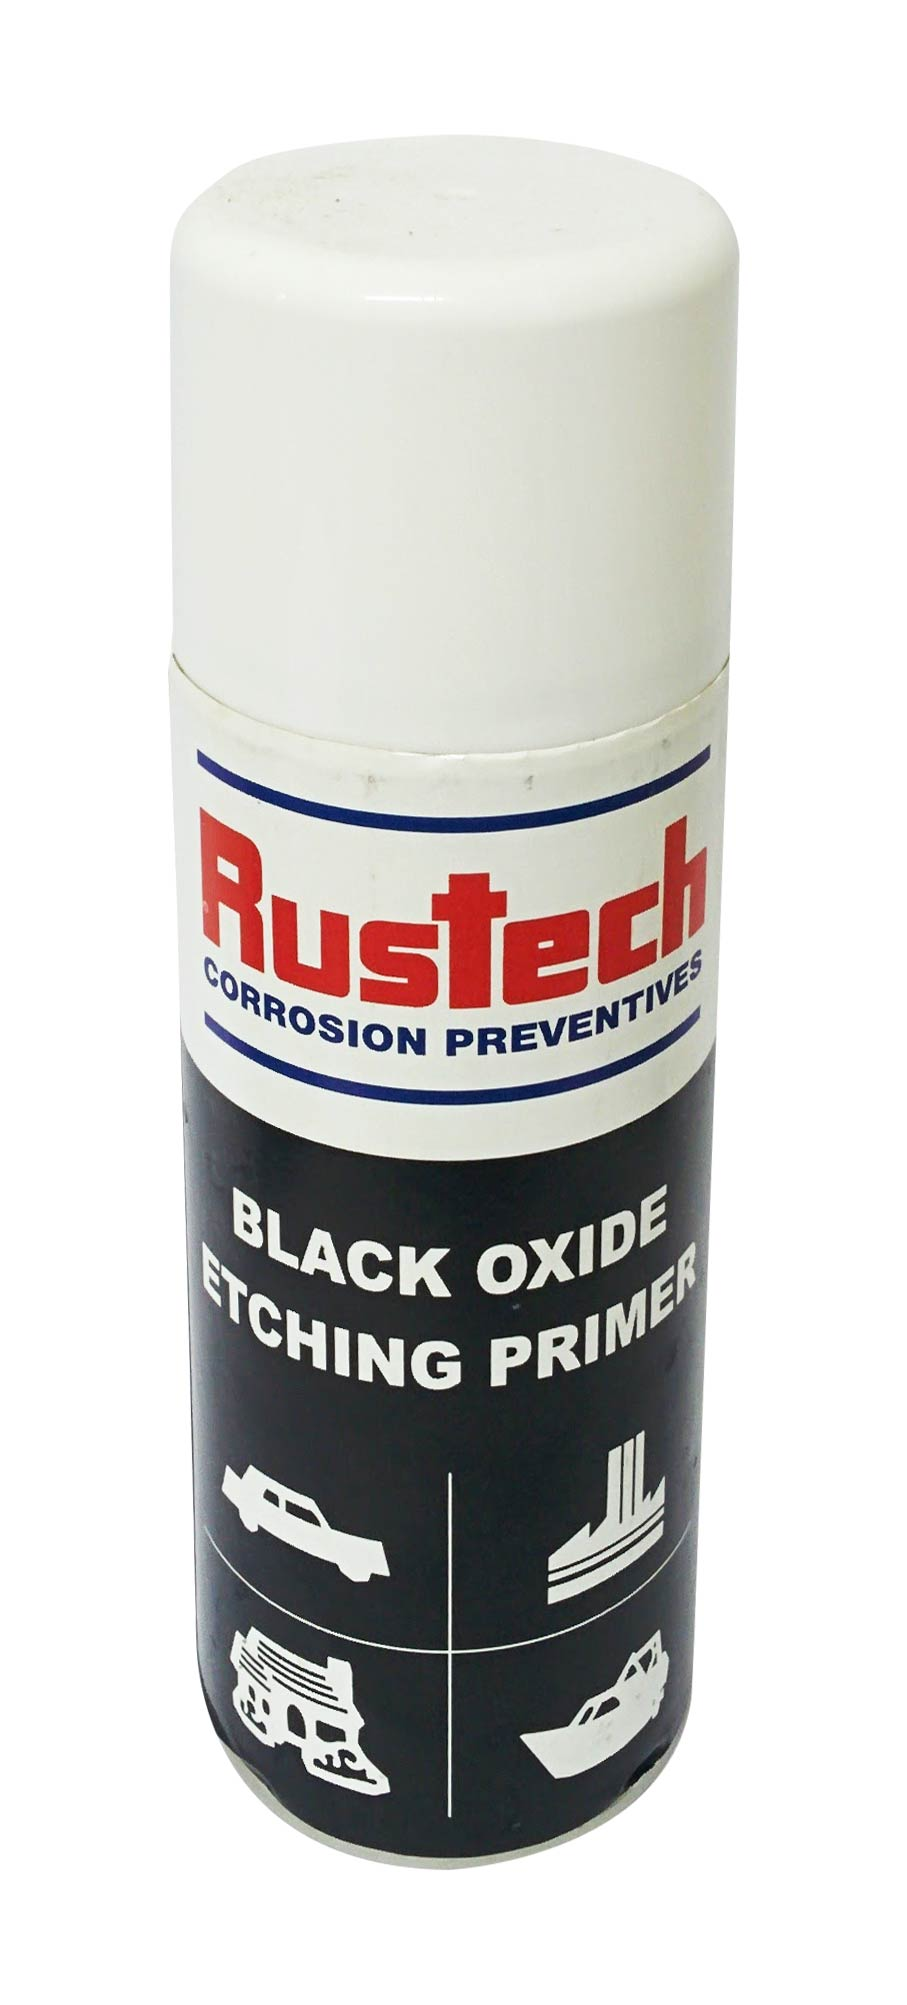 Rustech_BlackOxideEtchingPrimer.jpg